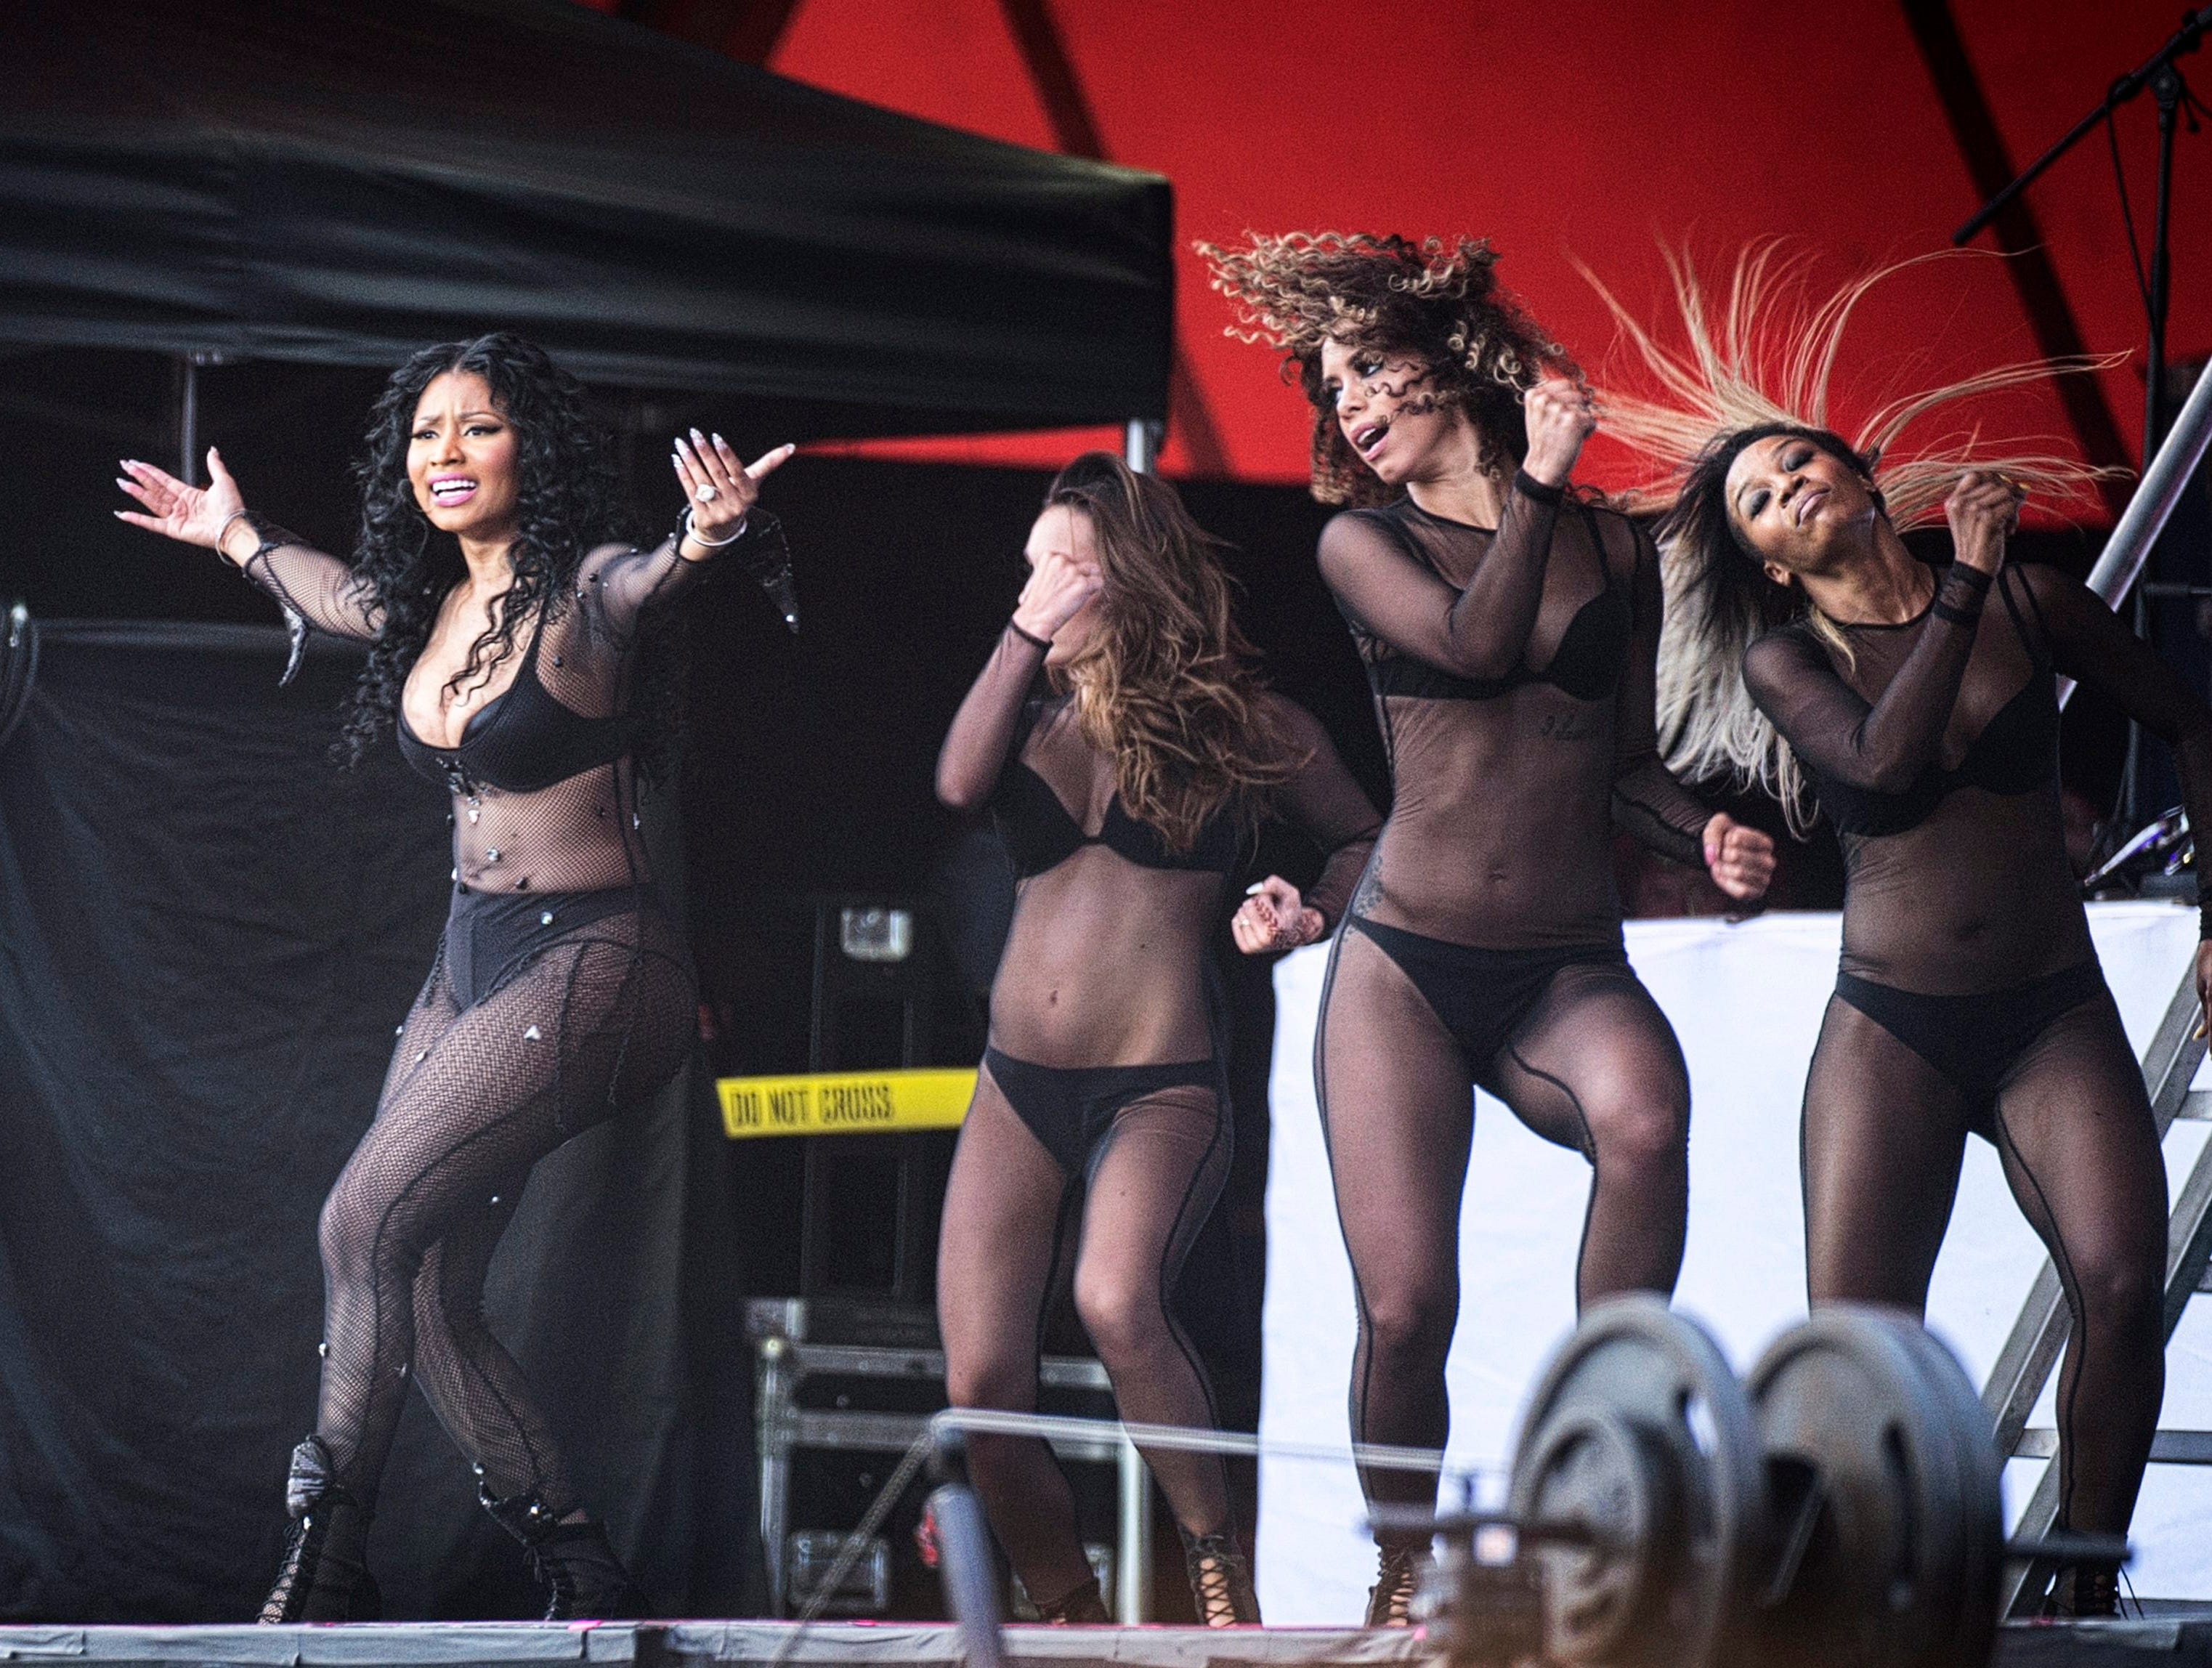 epa04831471 US singer Nicki Minaj (L) performs at the annual Roskilde Festival, in Roskilde, Denmark, 04 July 2015. The music festival will take place from 27 June to 04 July.  EPA/David Leth Williams DENMARK OUT ORG XMIT: COP009